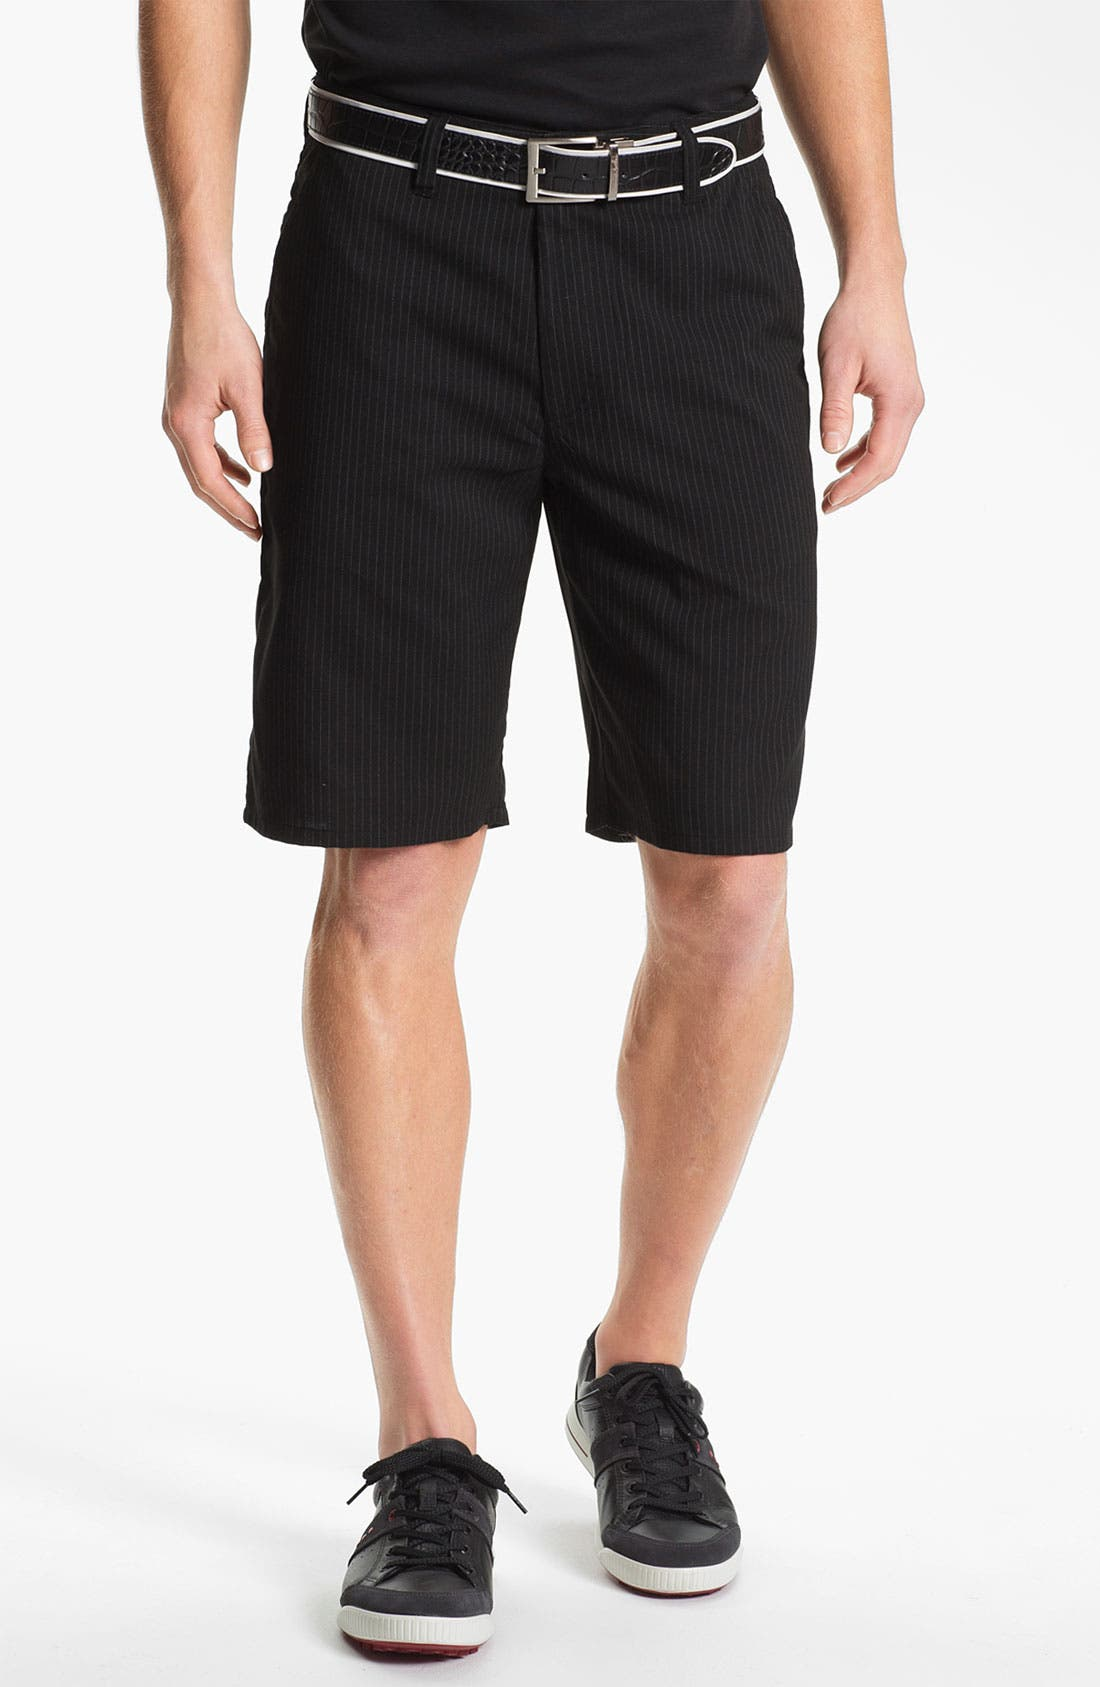 Alternate Image 1 Selected - Travis Mathew Flat Front Golf Shorts